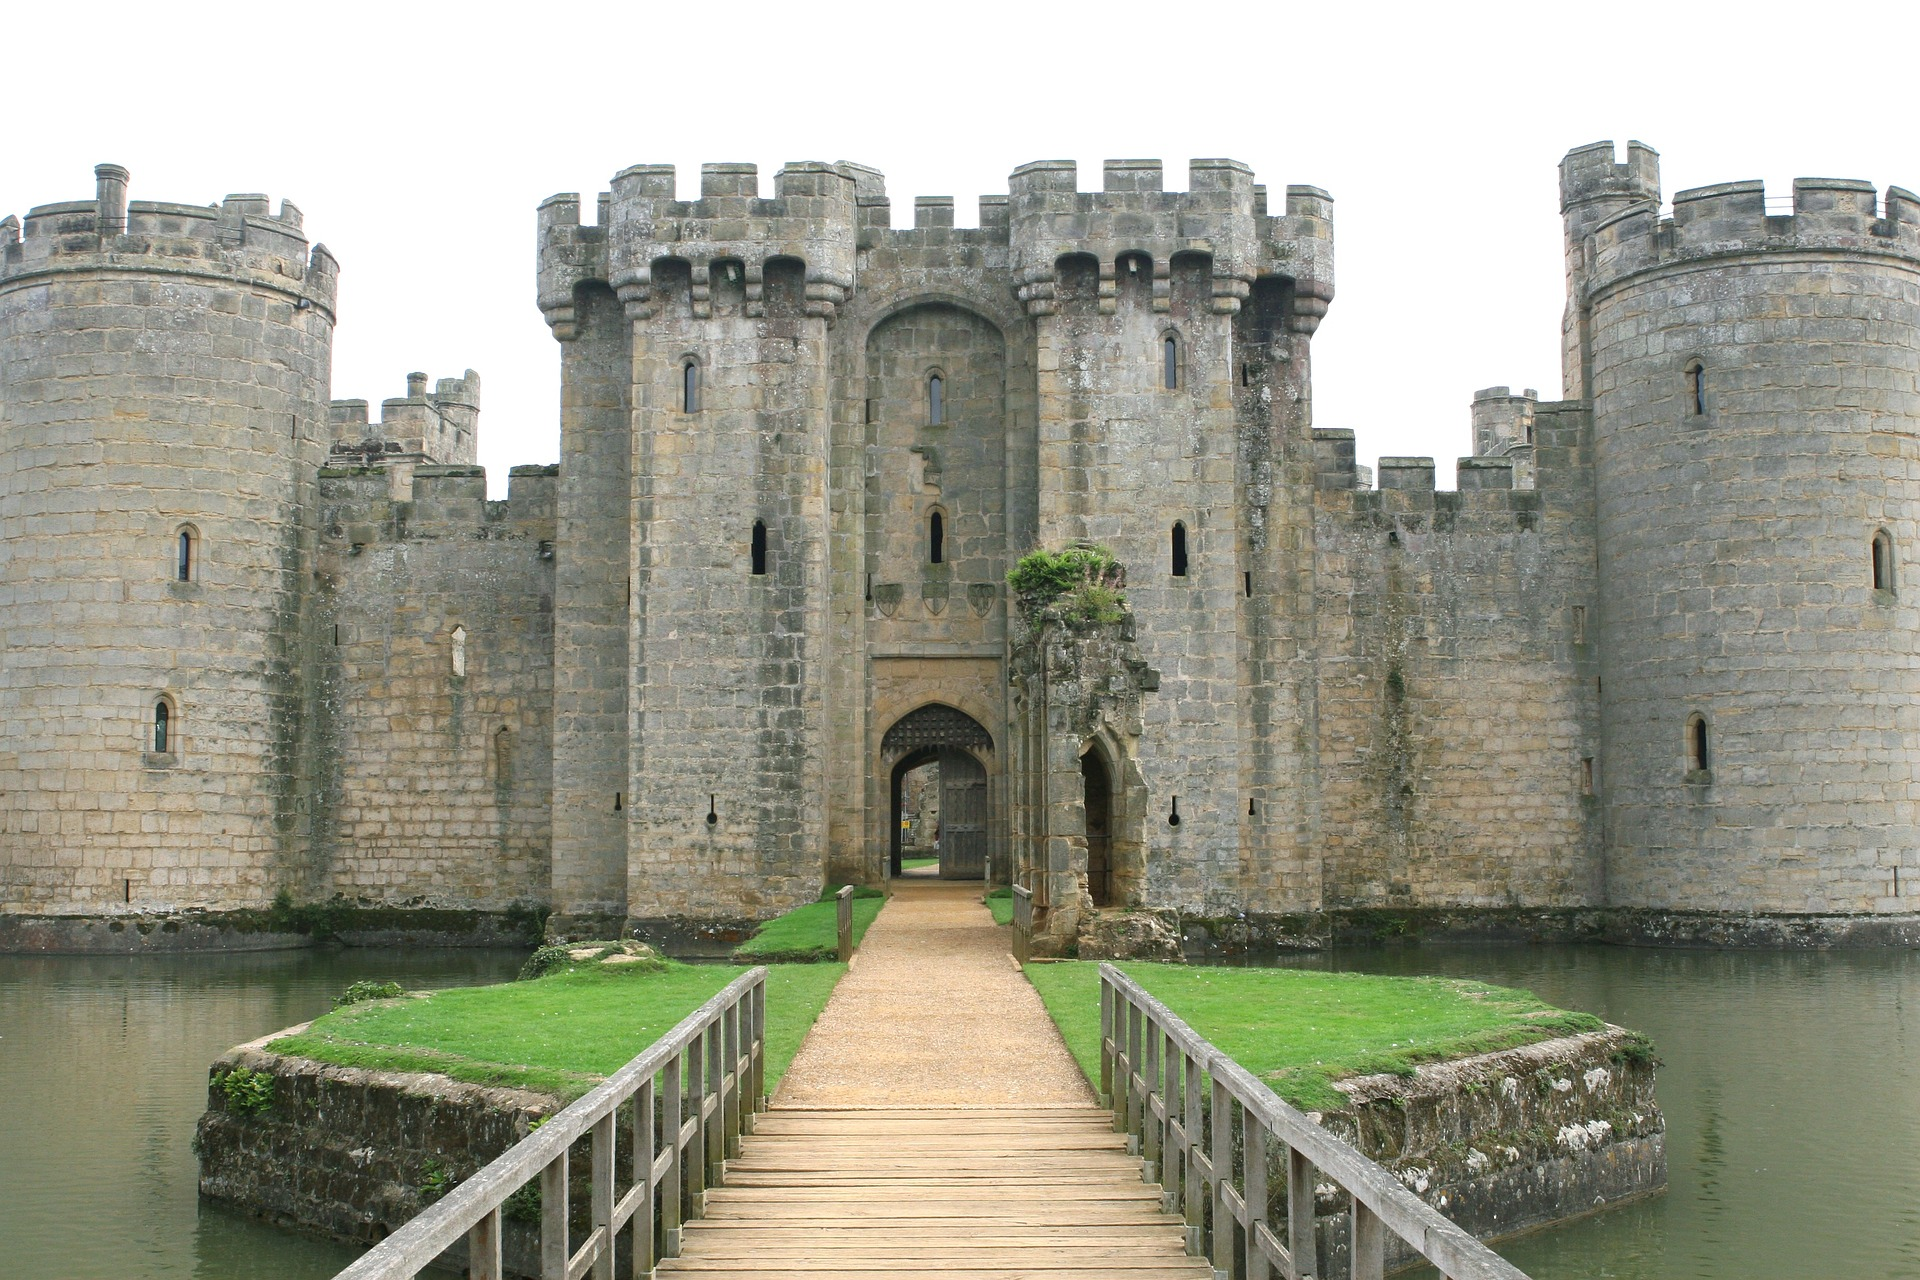 Find Value with Wide Moat ETFs